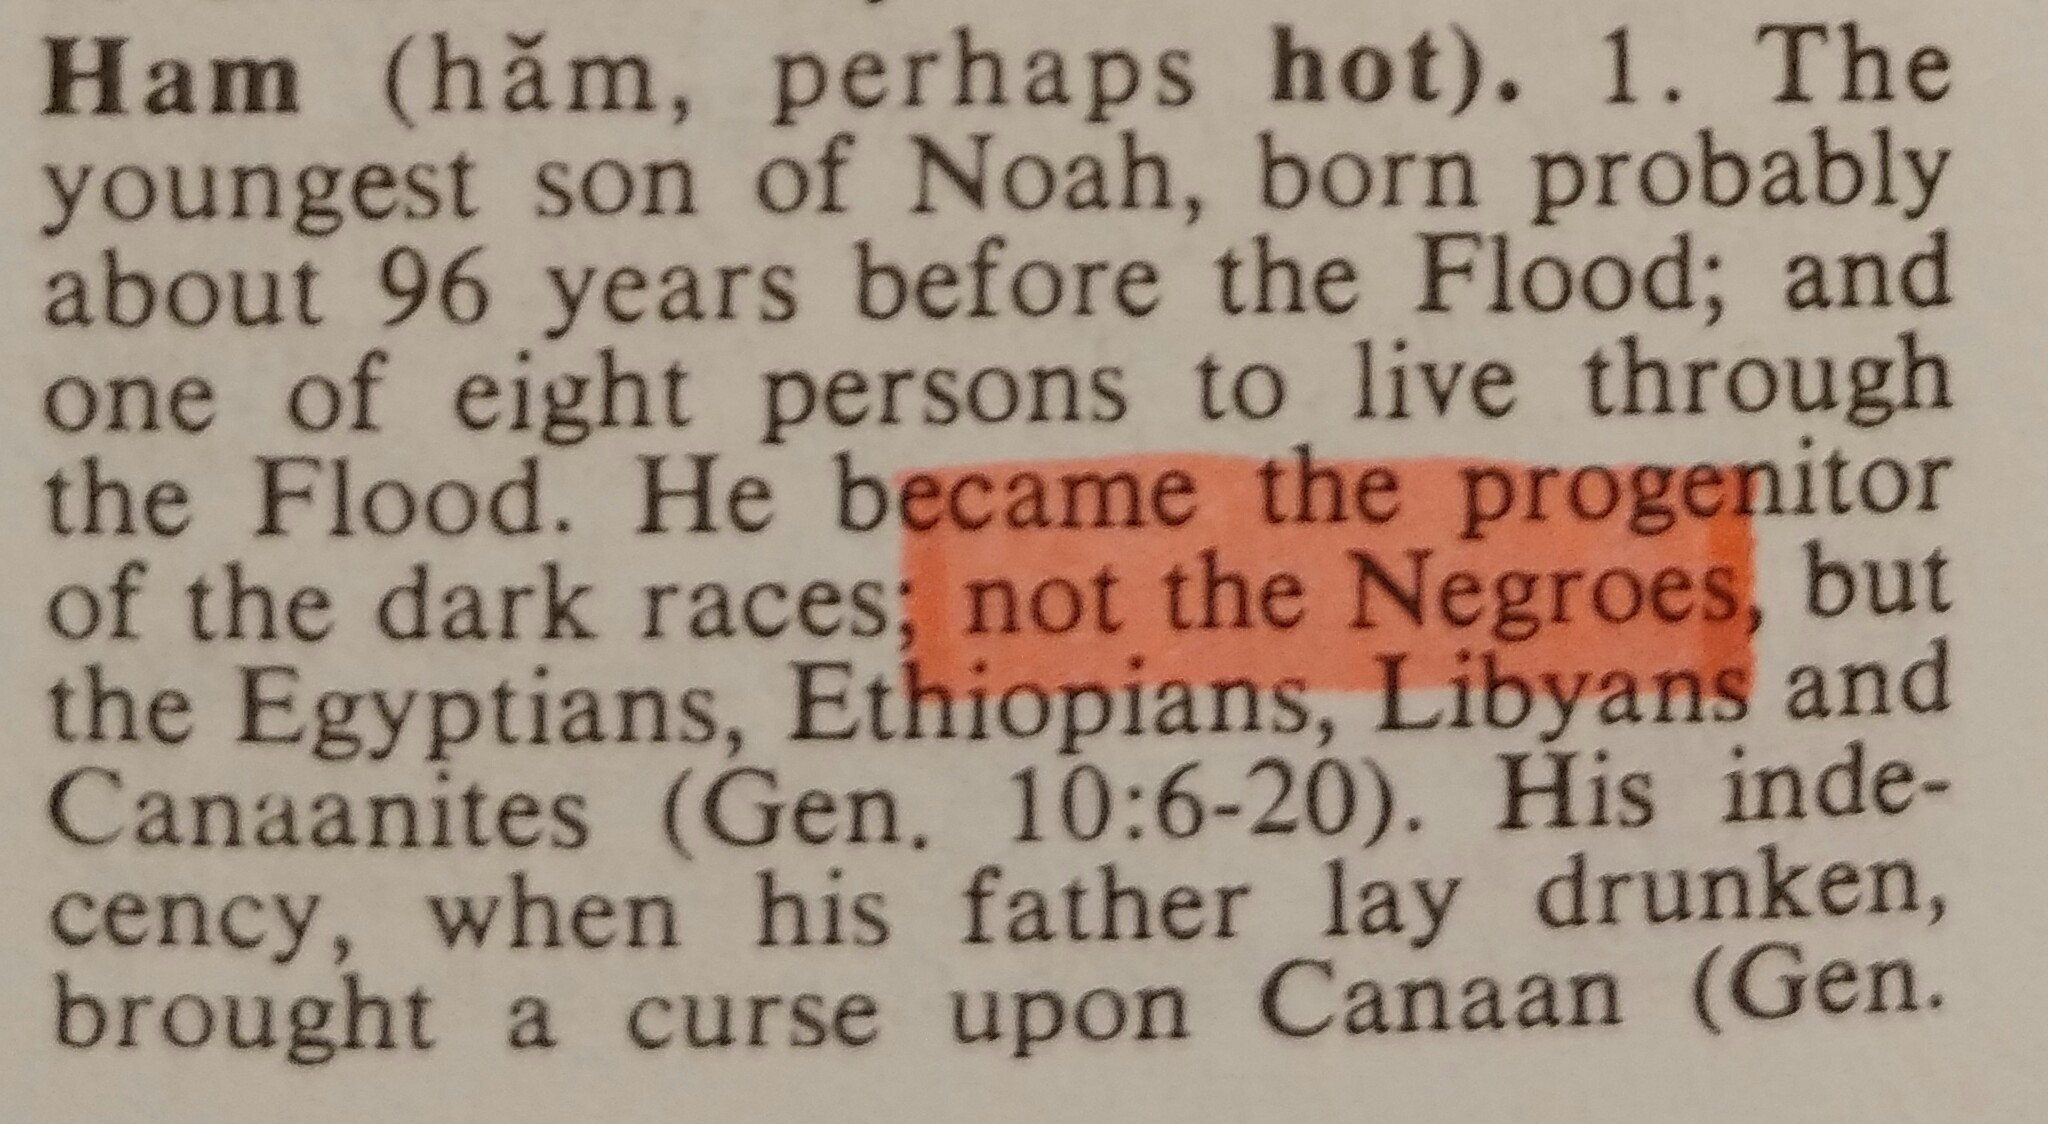 Zondervan Bible Dictionary: Negroes Are Not From The Line of